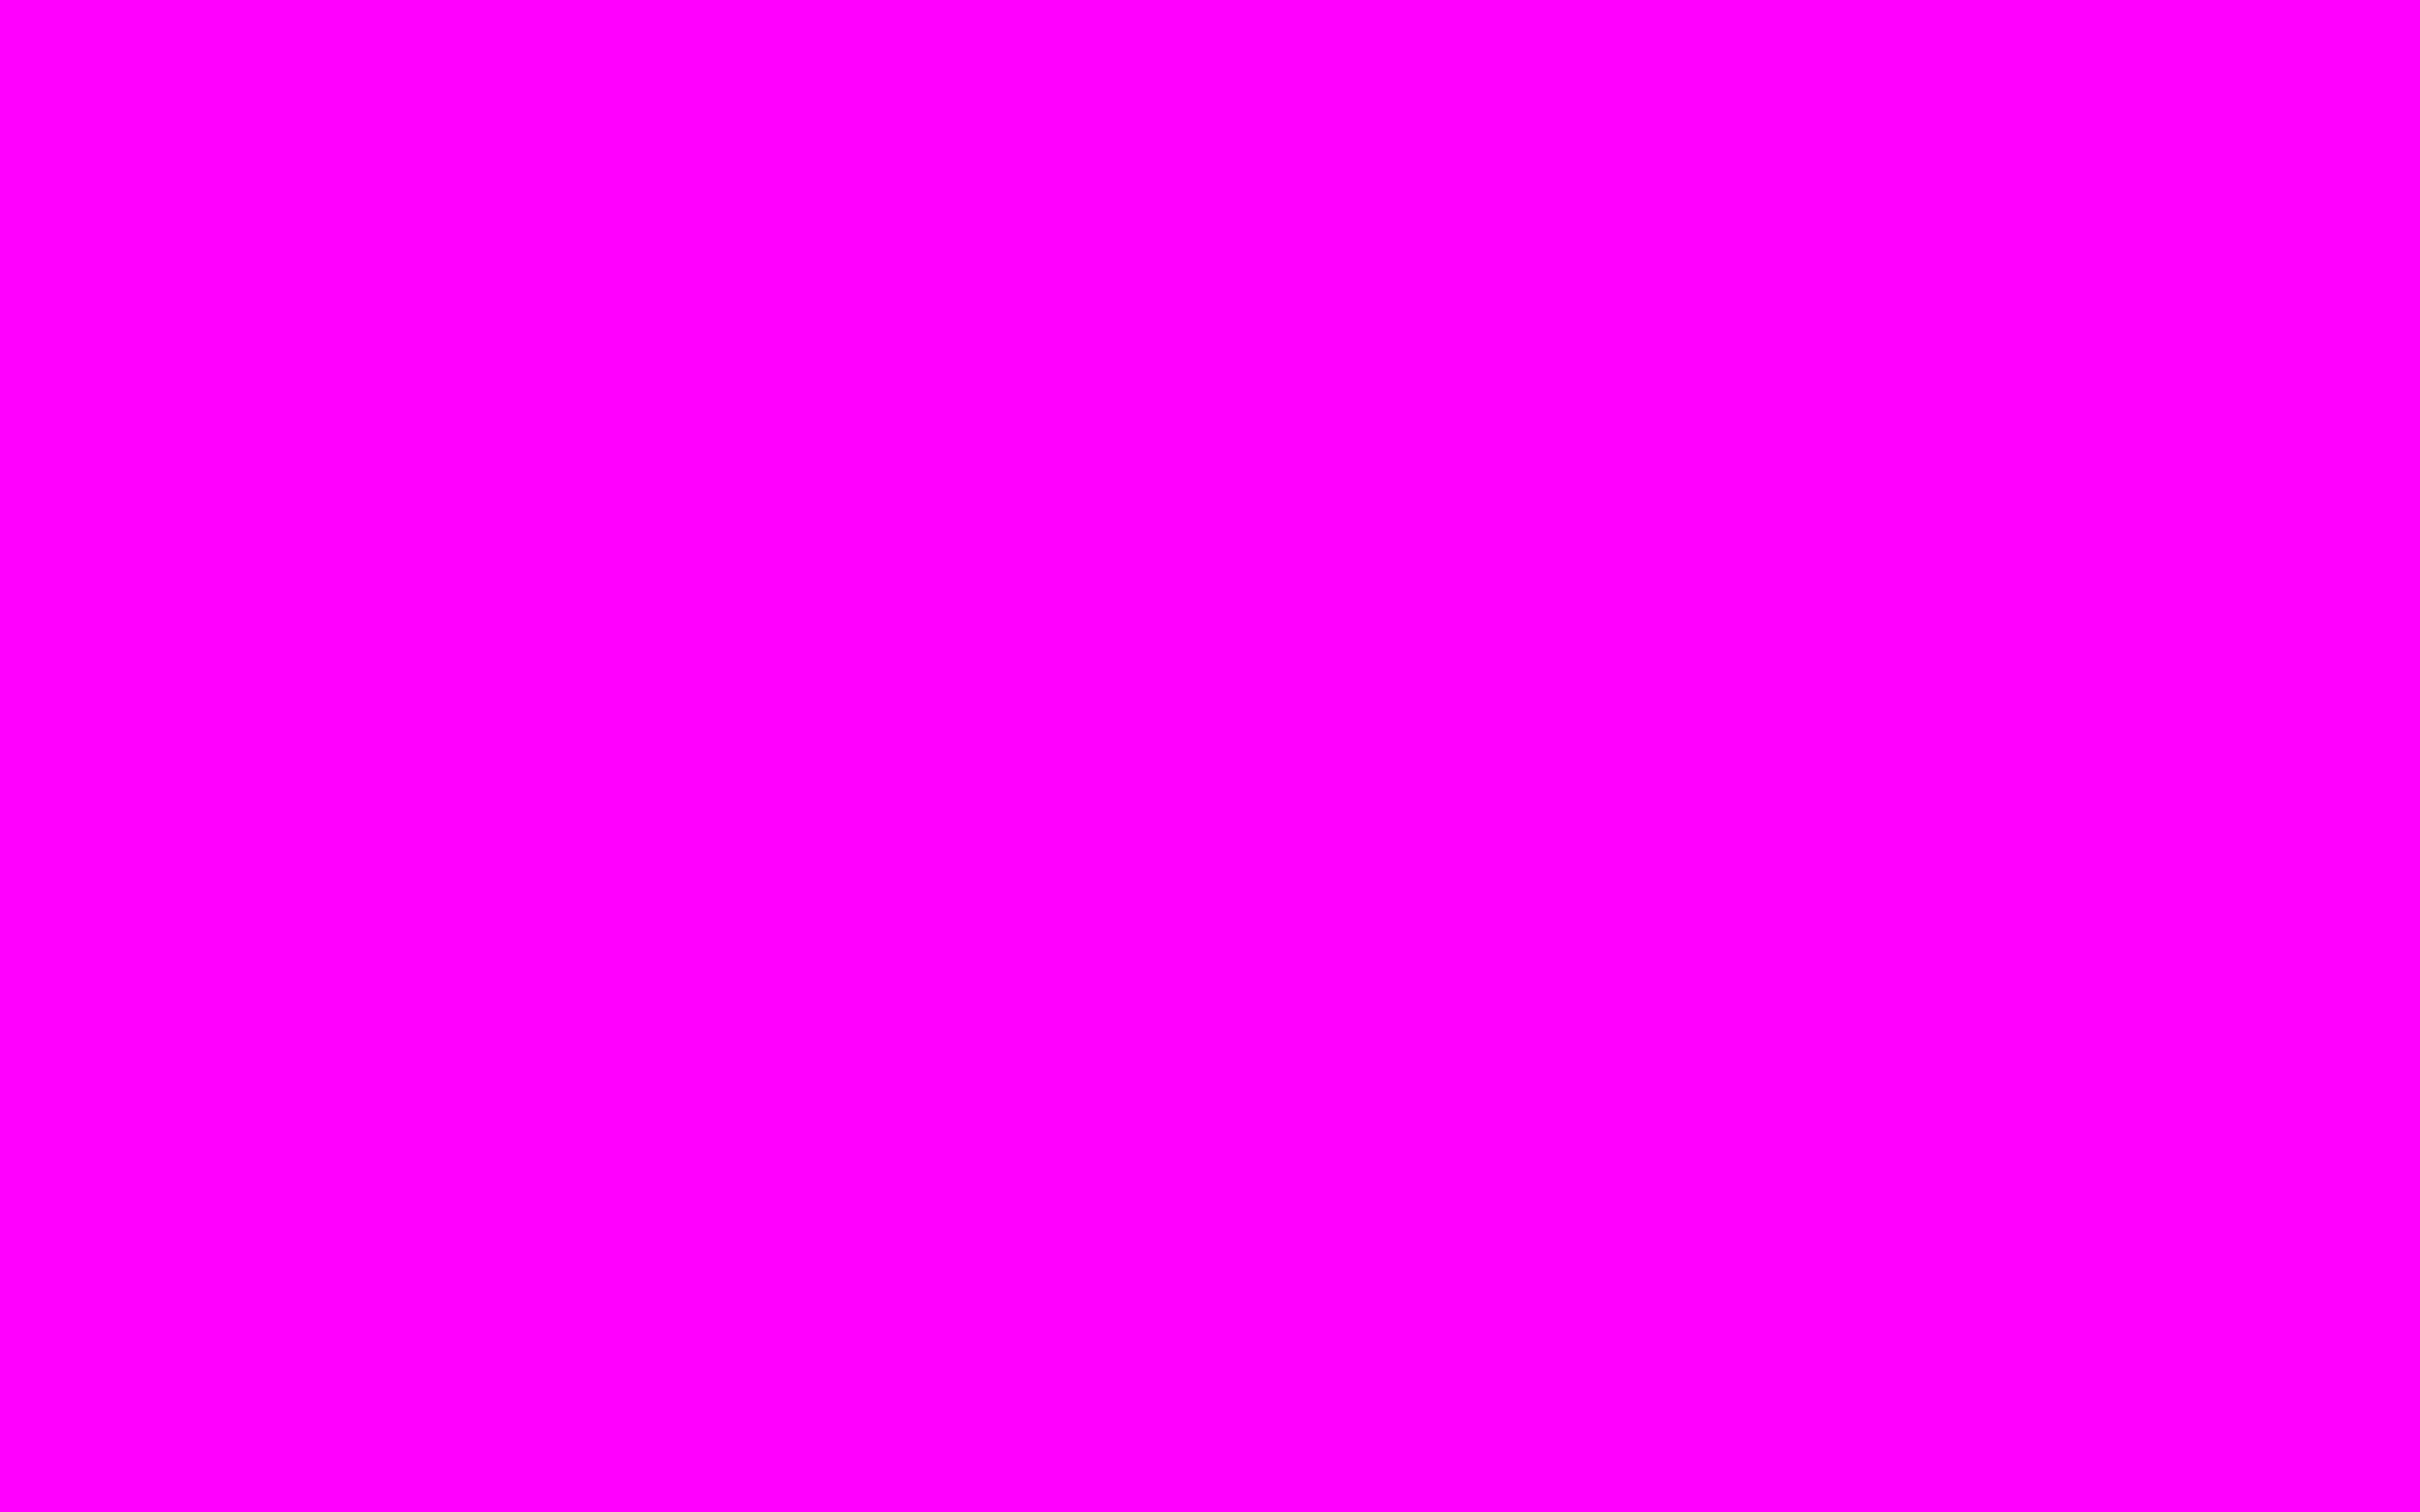 2560x1600 Fuchsia Solid Color Background